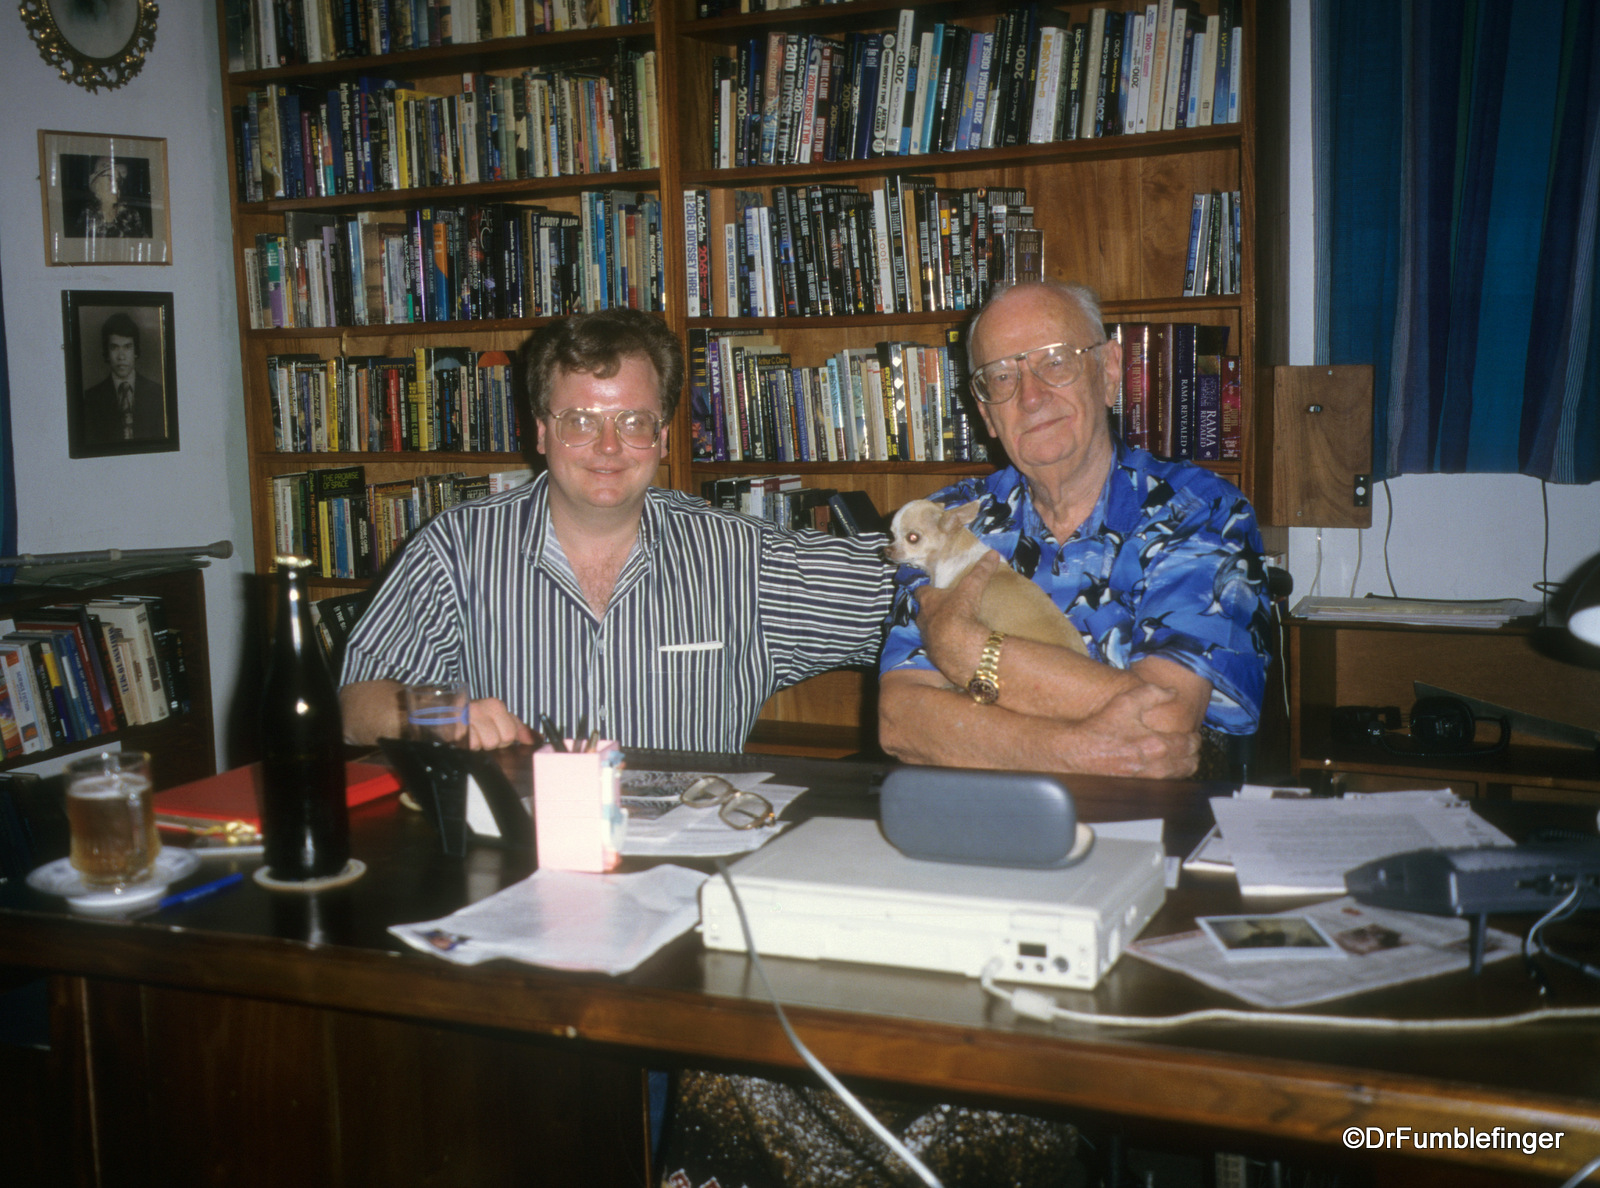 From R to L, Sir Arthur, Pepsi and DrFumblefinger. The bookcase behind us is filled with Arthur's books.